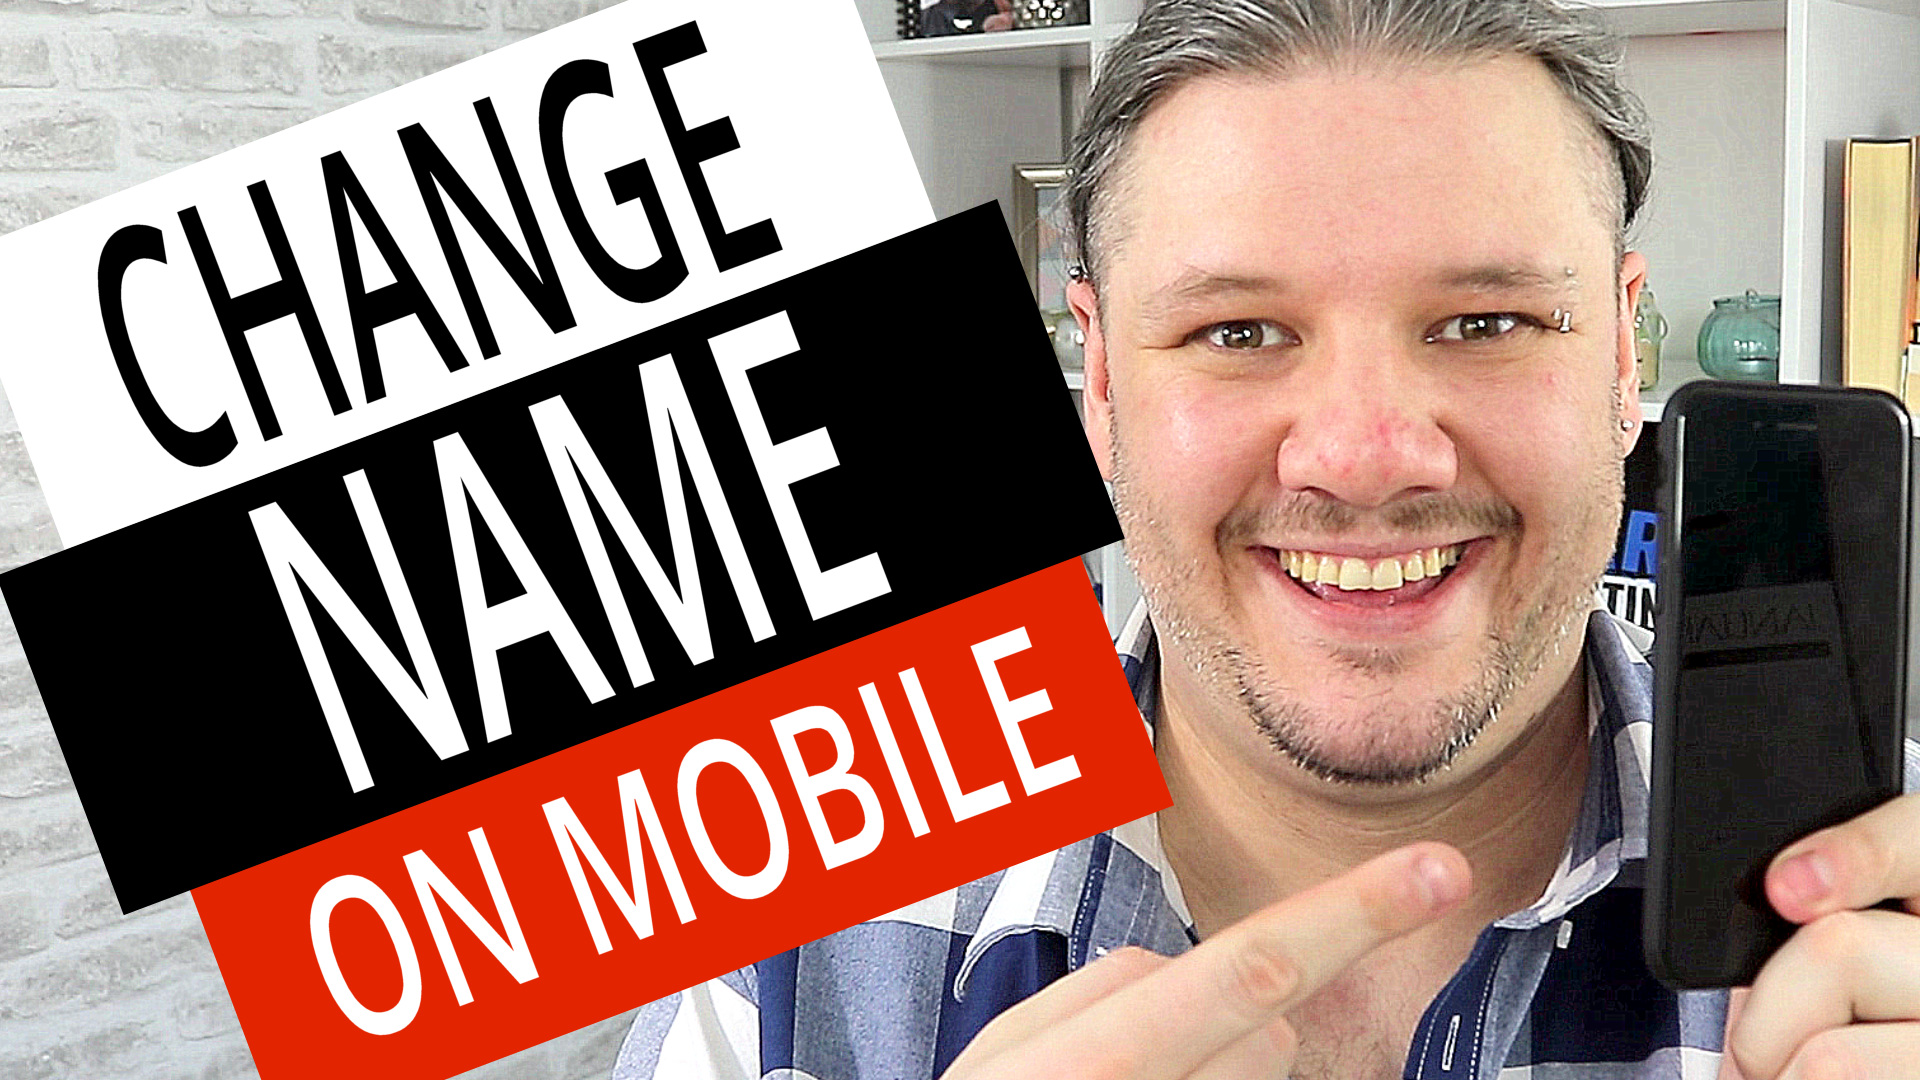 How To Change Channel Name on Mobile iPhone & Android